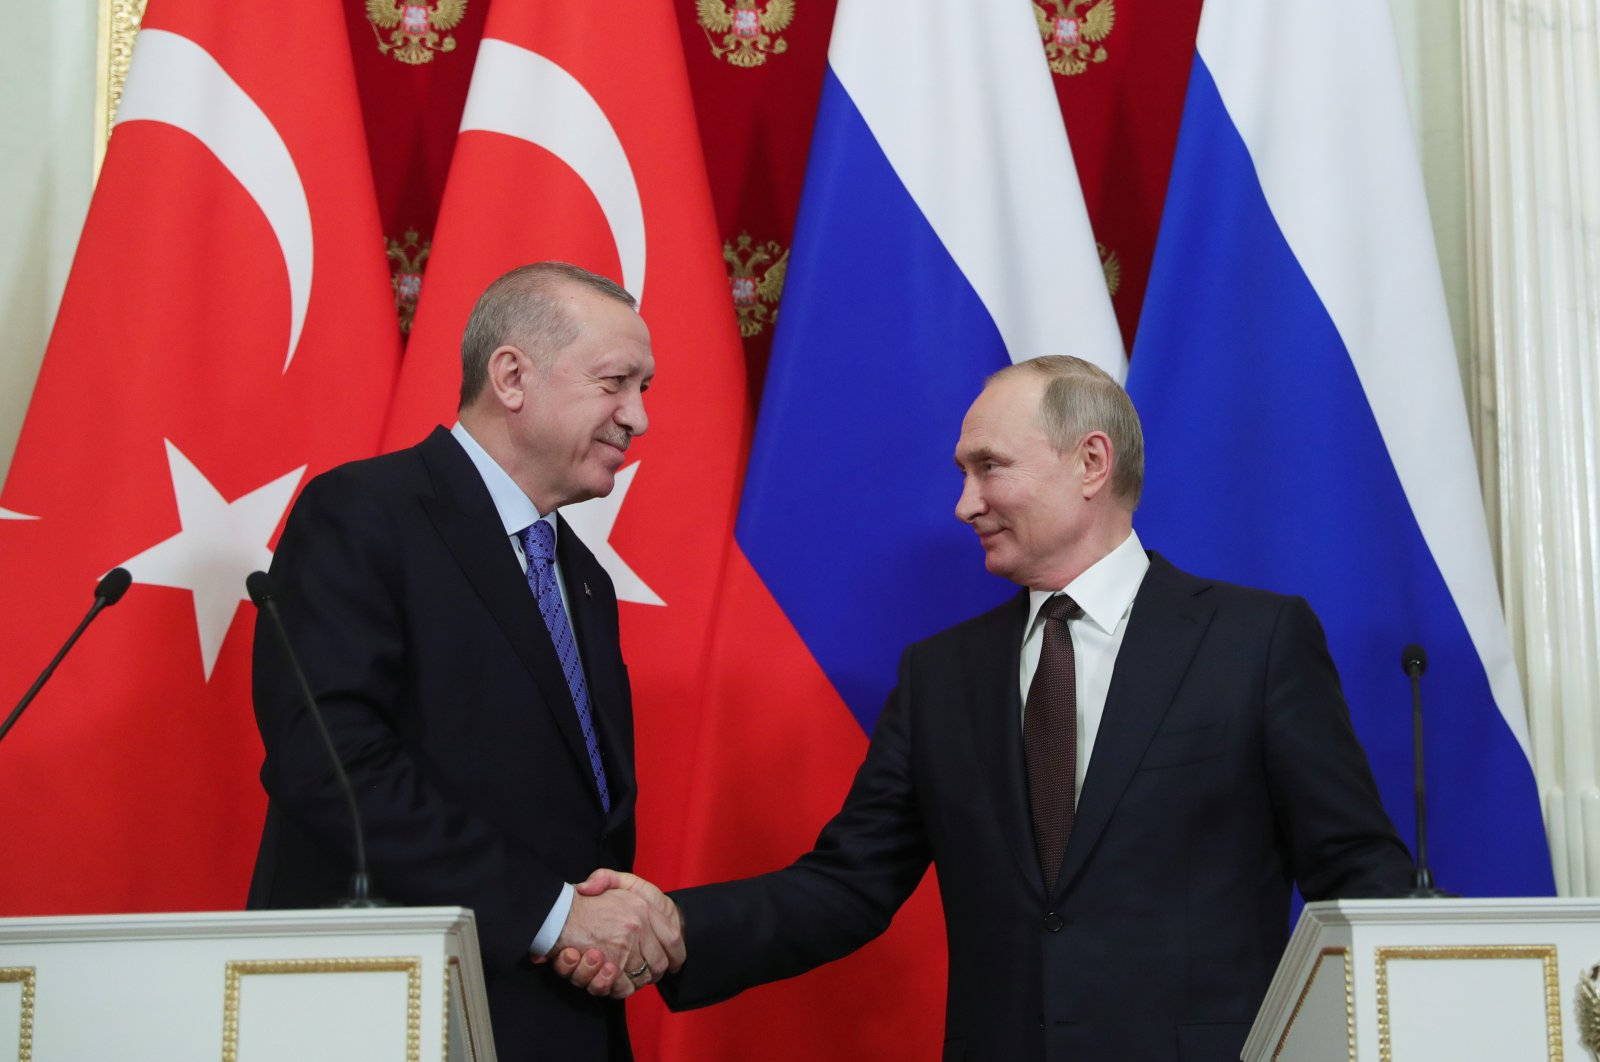 President Recep Tayyip Erdoğan shakes hand with his Russian counterpart Vladimir Putin following a press conference in Moscow, March 6, 2020. (AA)